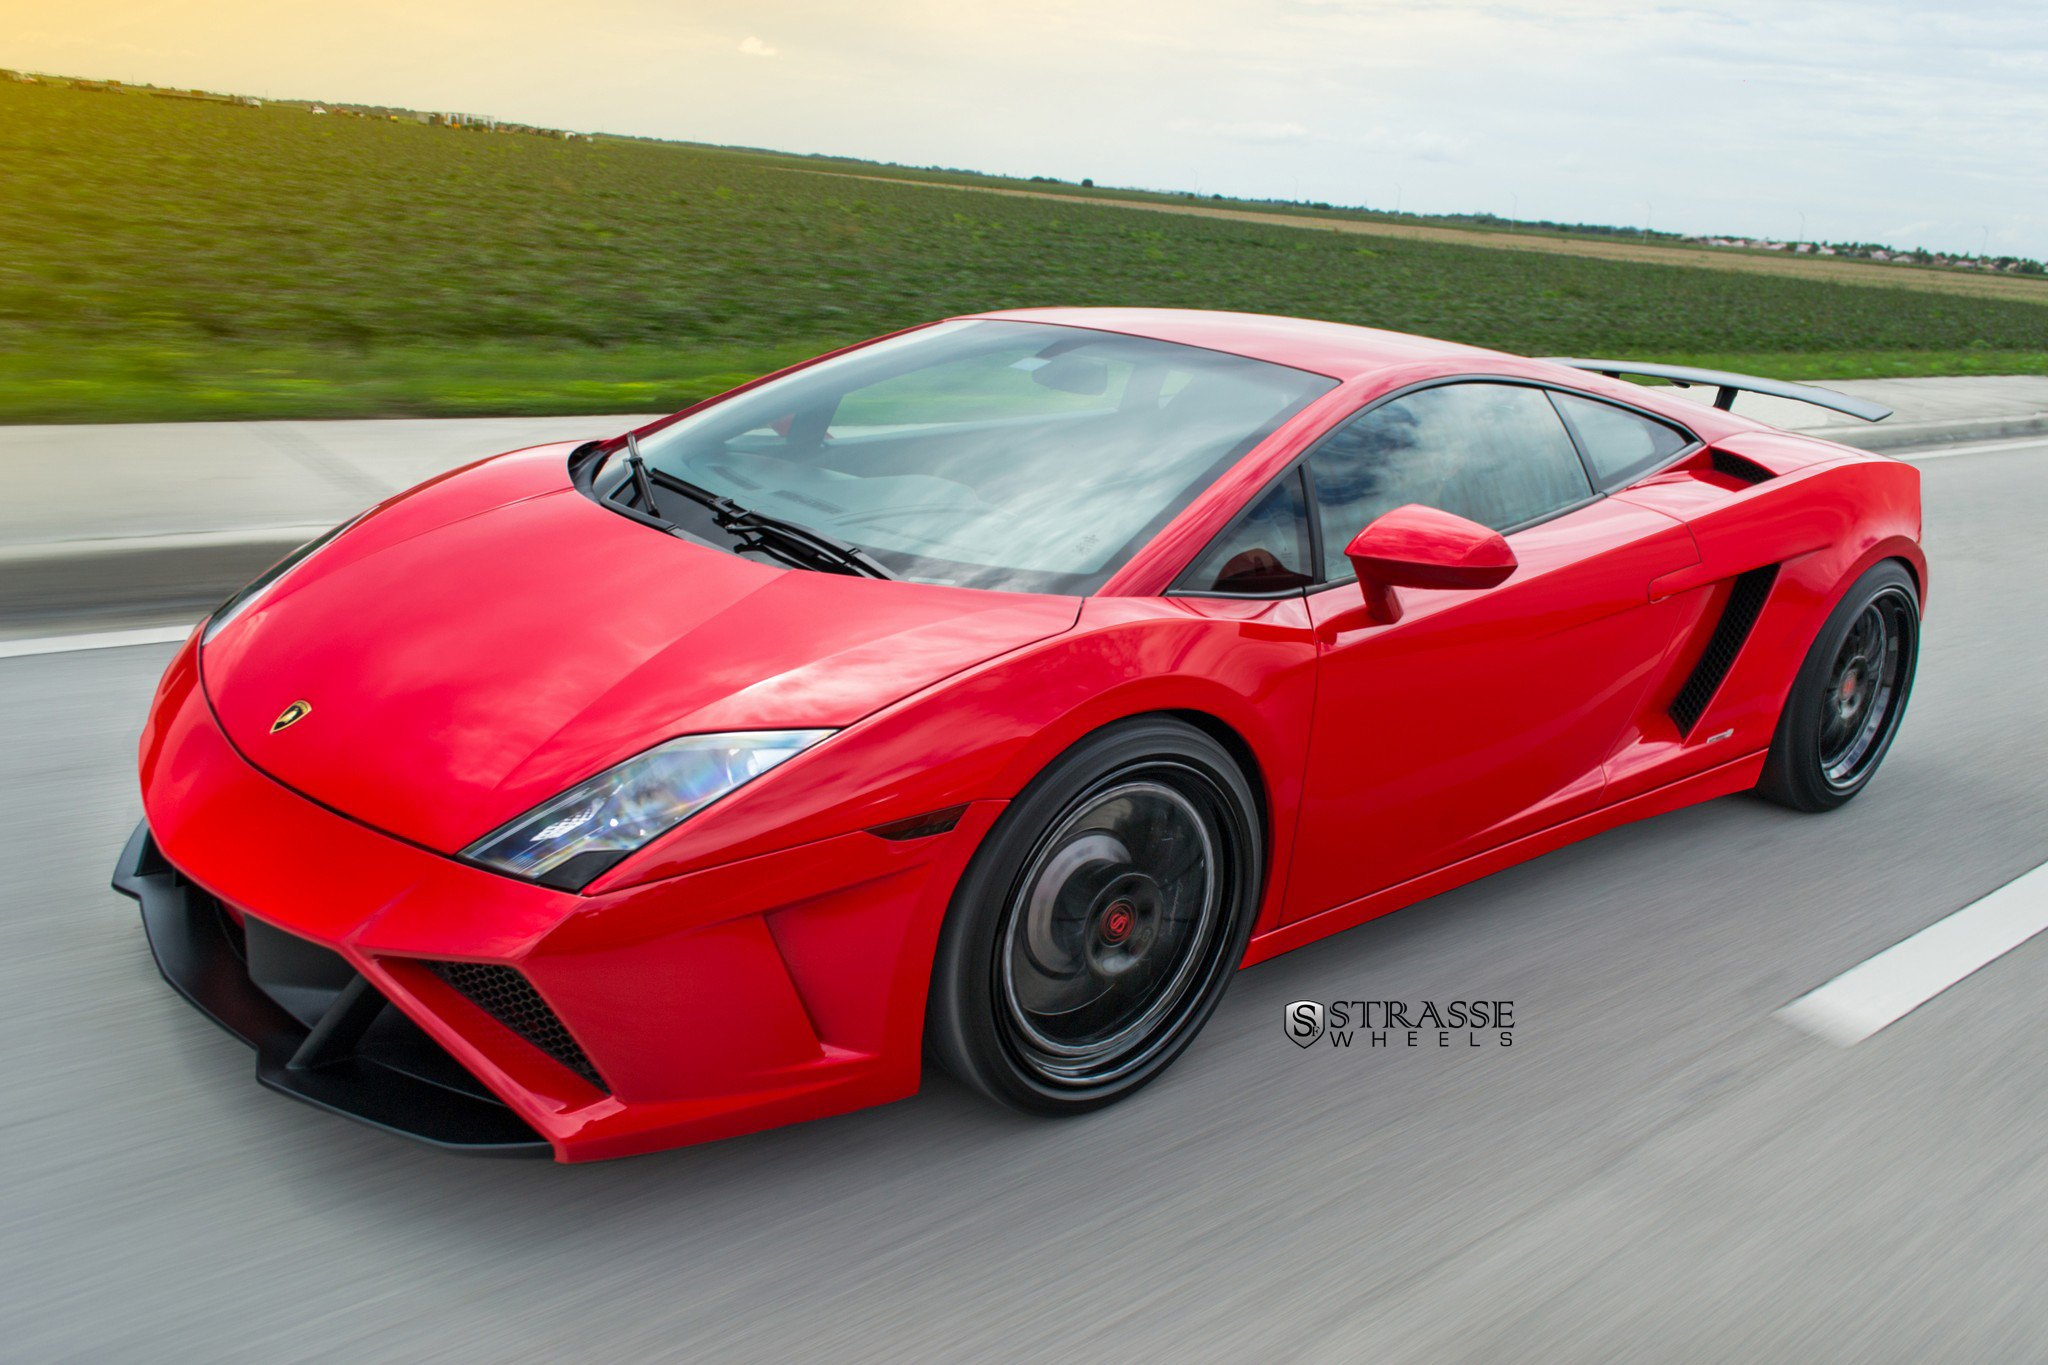 an is name lambo bad parts for esavox a excellent news real ixoost using lamborghini speaker